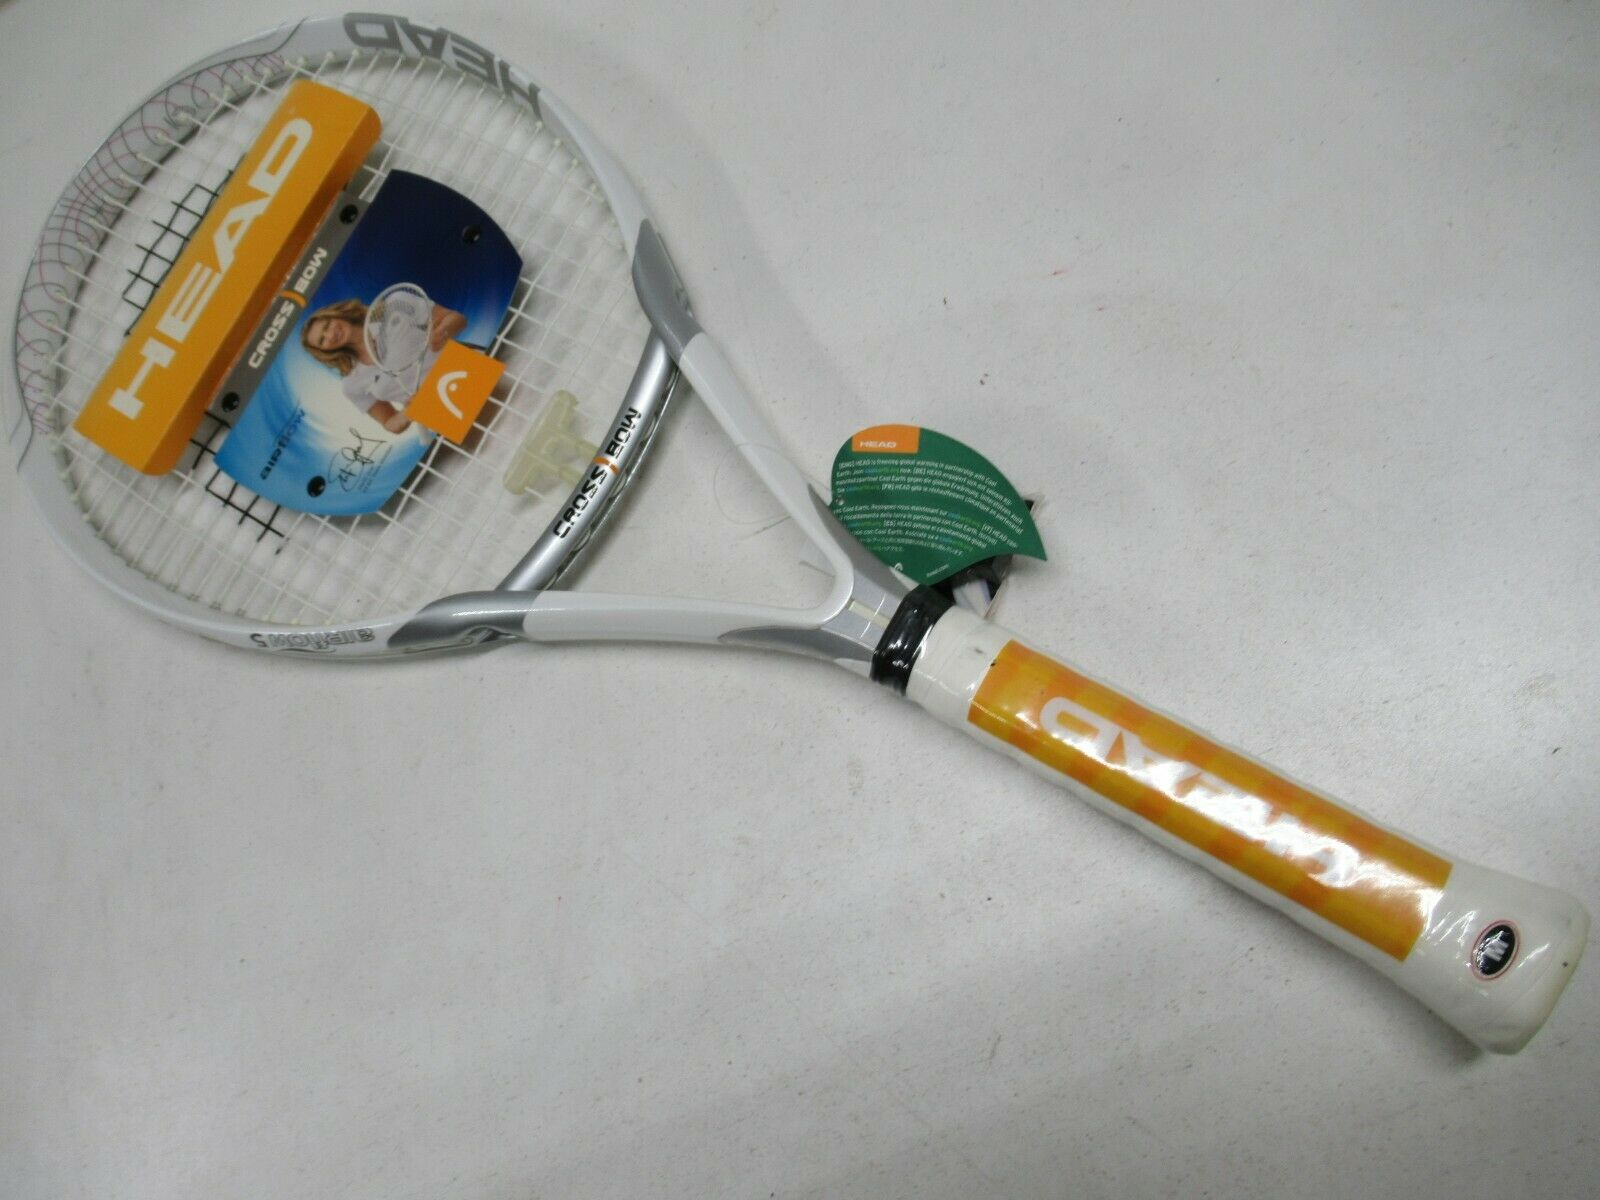 NEW OLD STOCK HEAD CROSSBOW AIRFLOW 5 TENNIS RACQUET (4 3 8) PRE-STRUNG